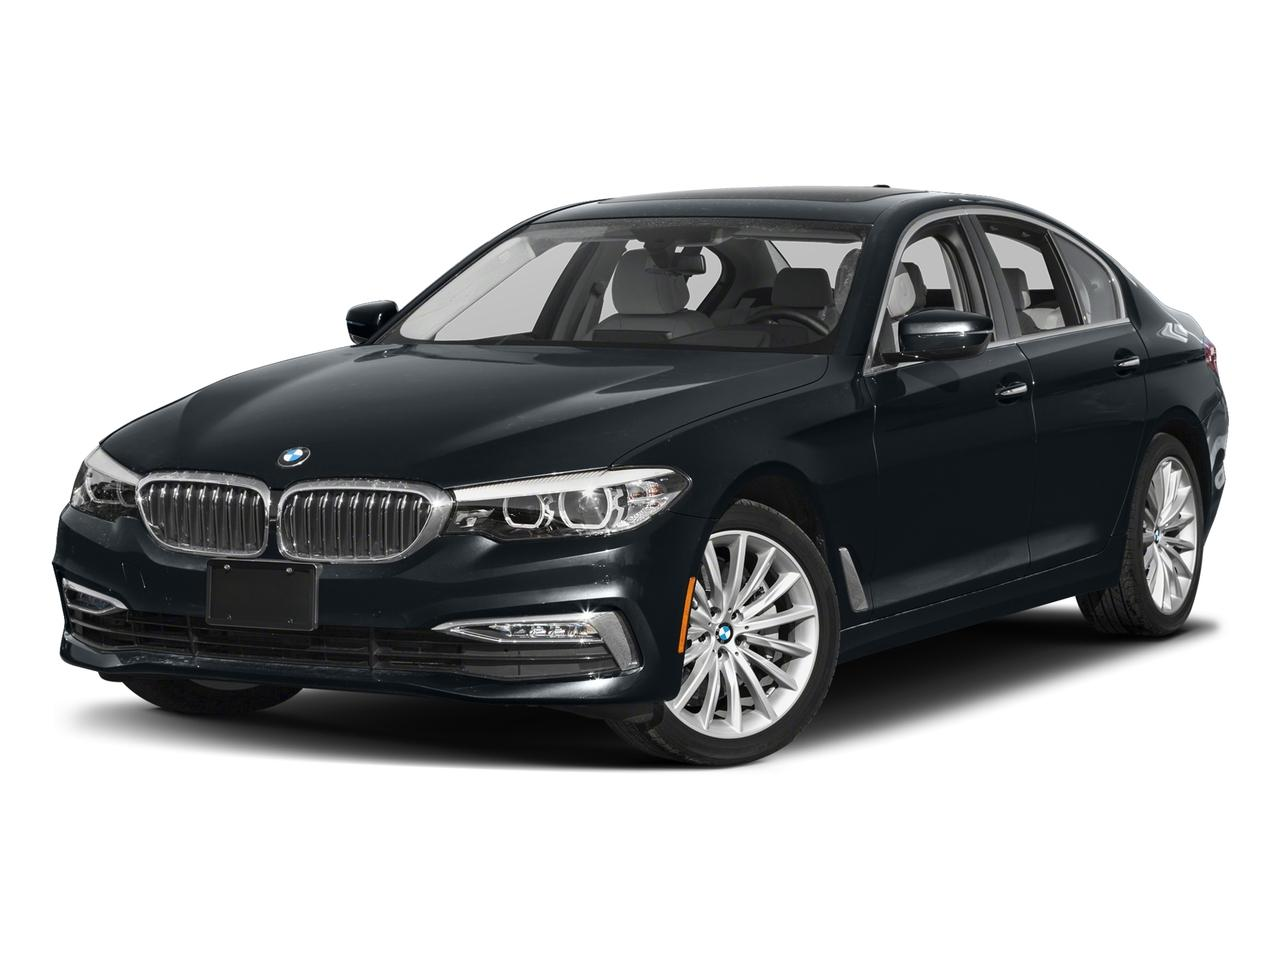 2017 BMW 530i Vehicle Photo in Pleasanton, CA 94588